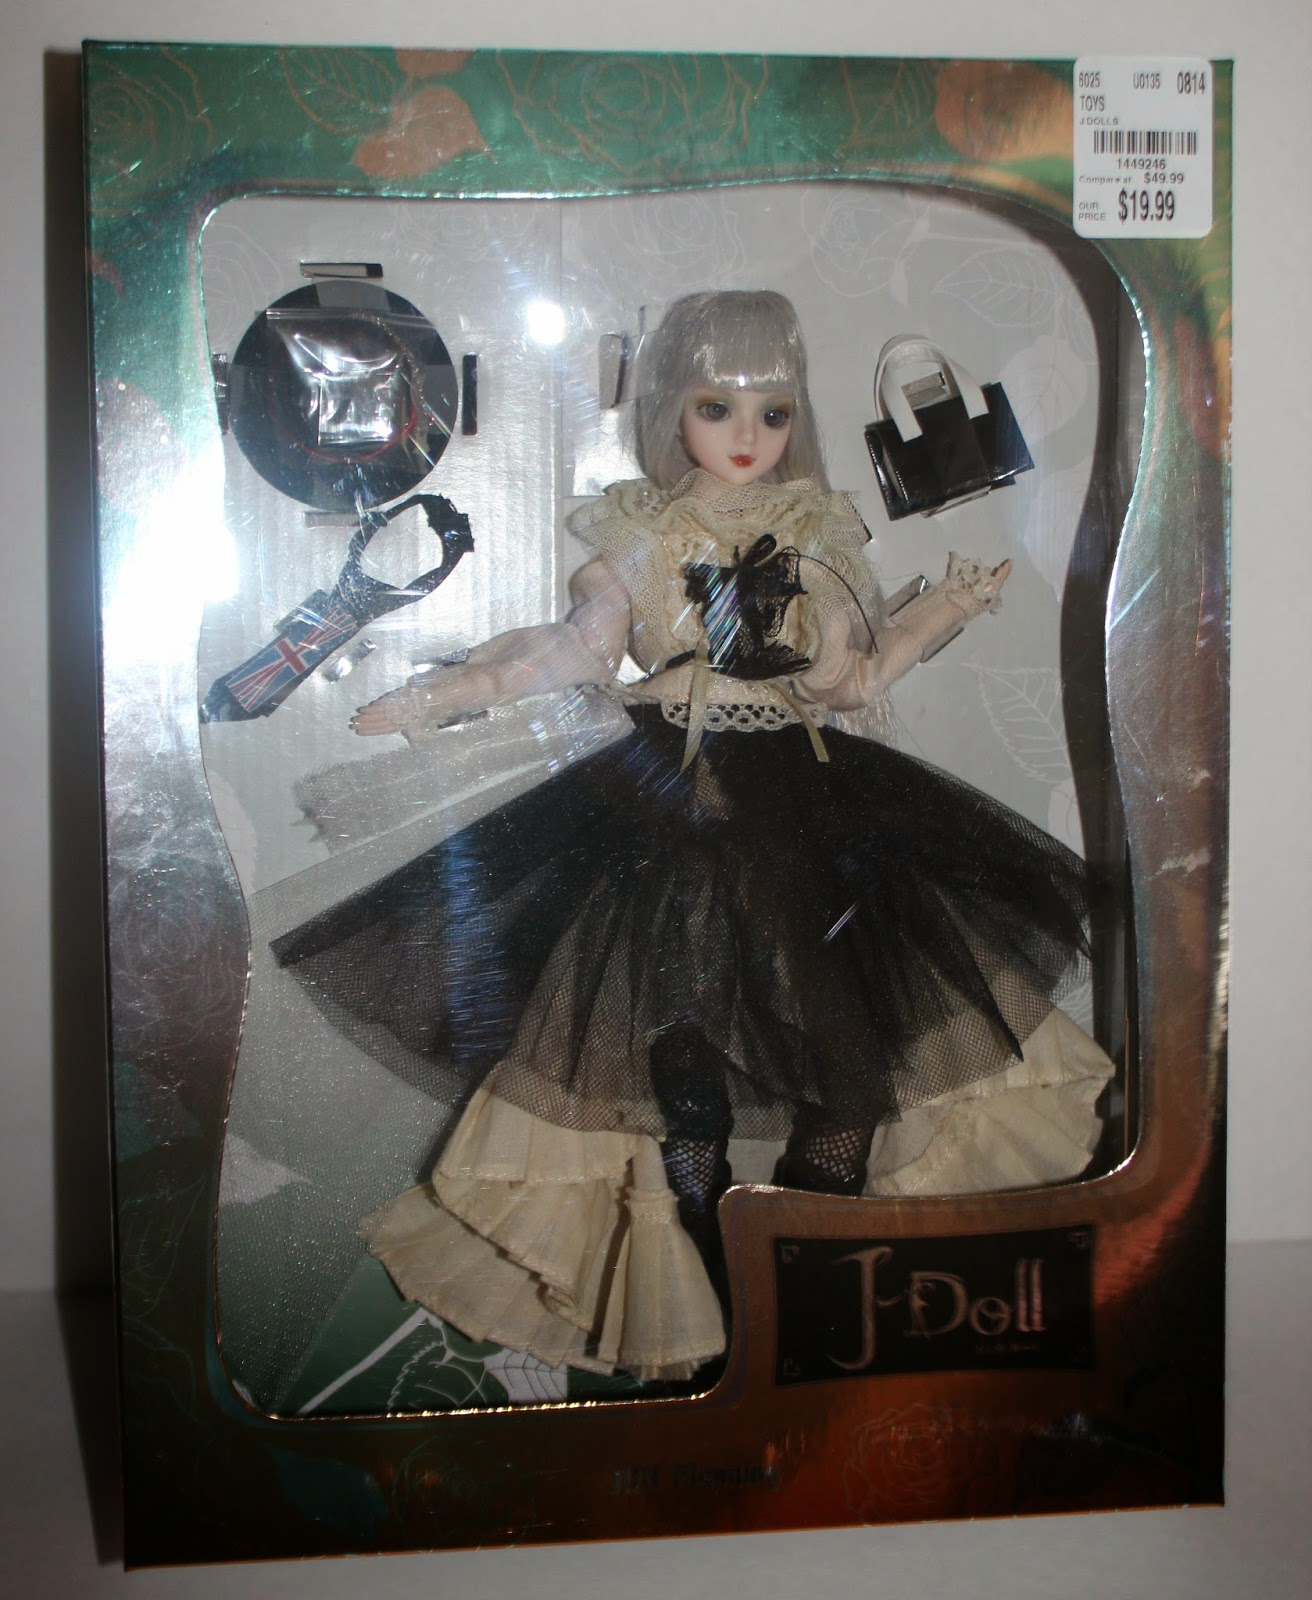 Maybe People Around Here Have Had Their Fill Or Are Getting Tired Of Them WellMore For Me Then Todays Doll Is Camden High Street One The J Dolls